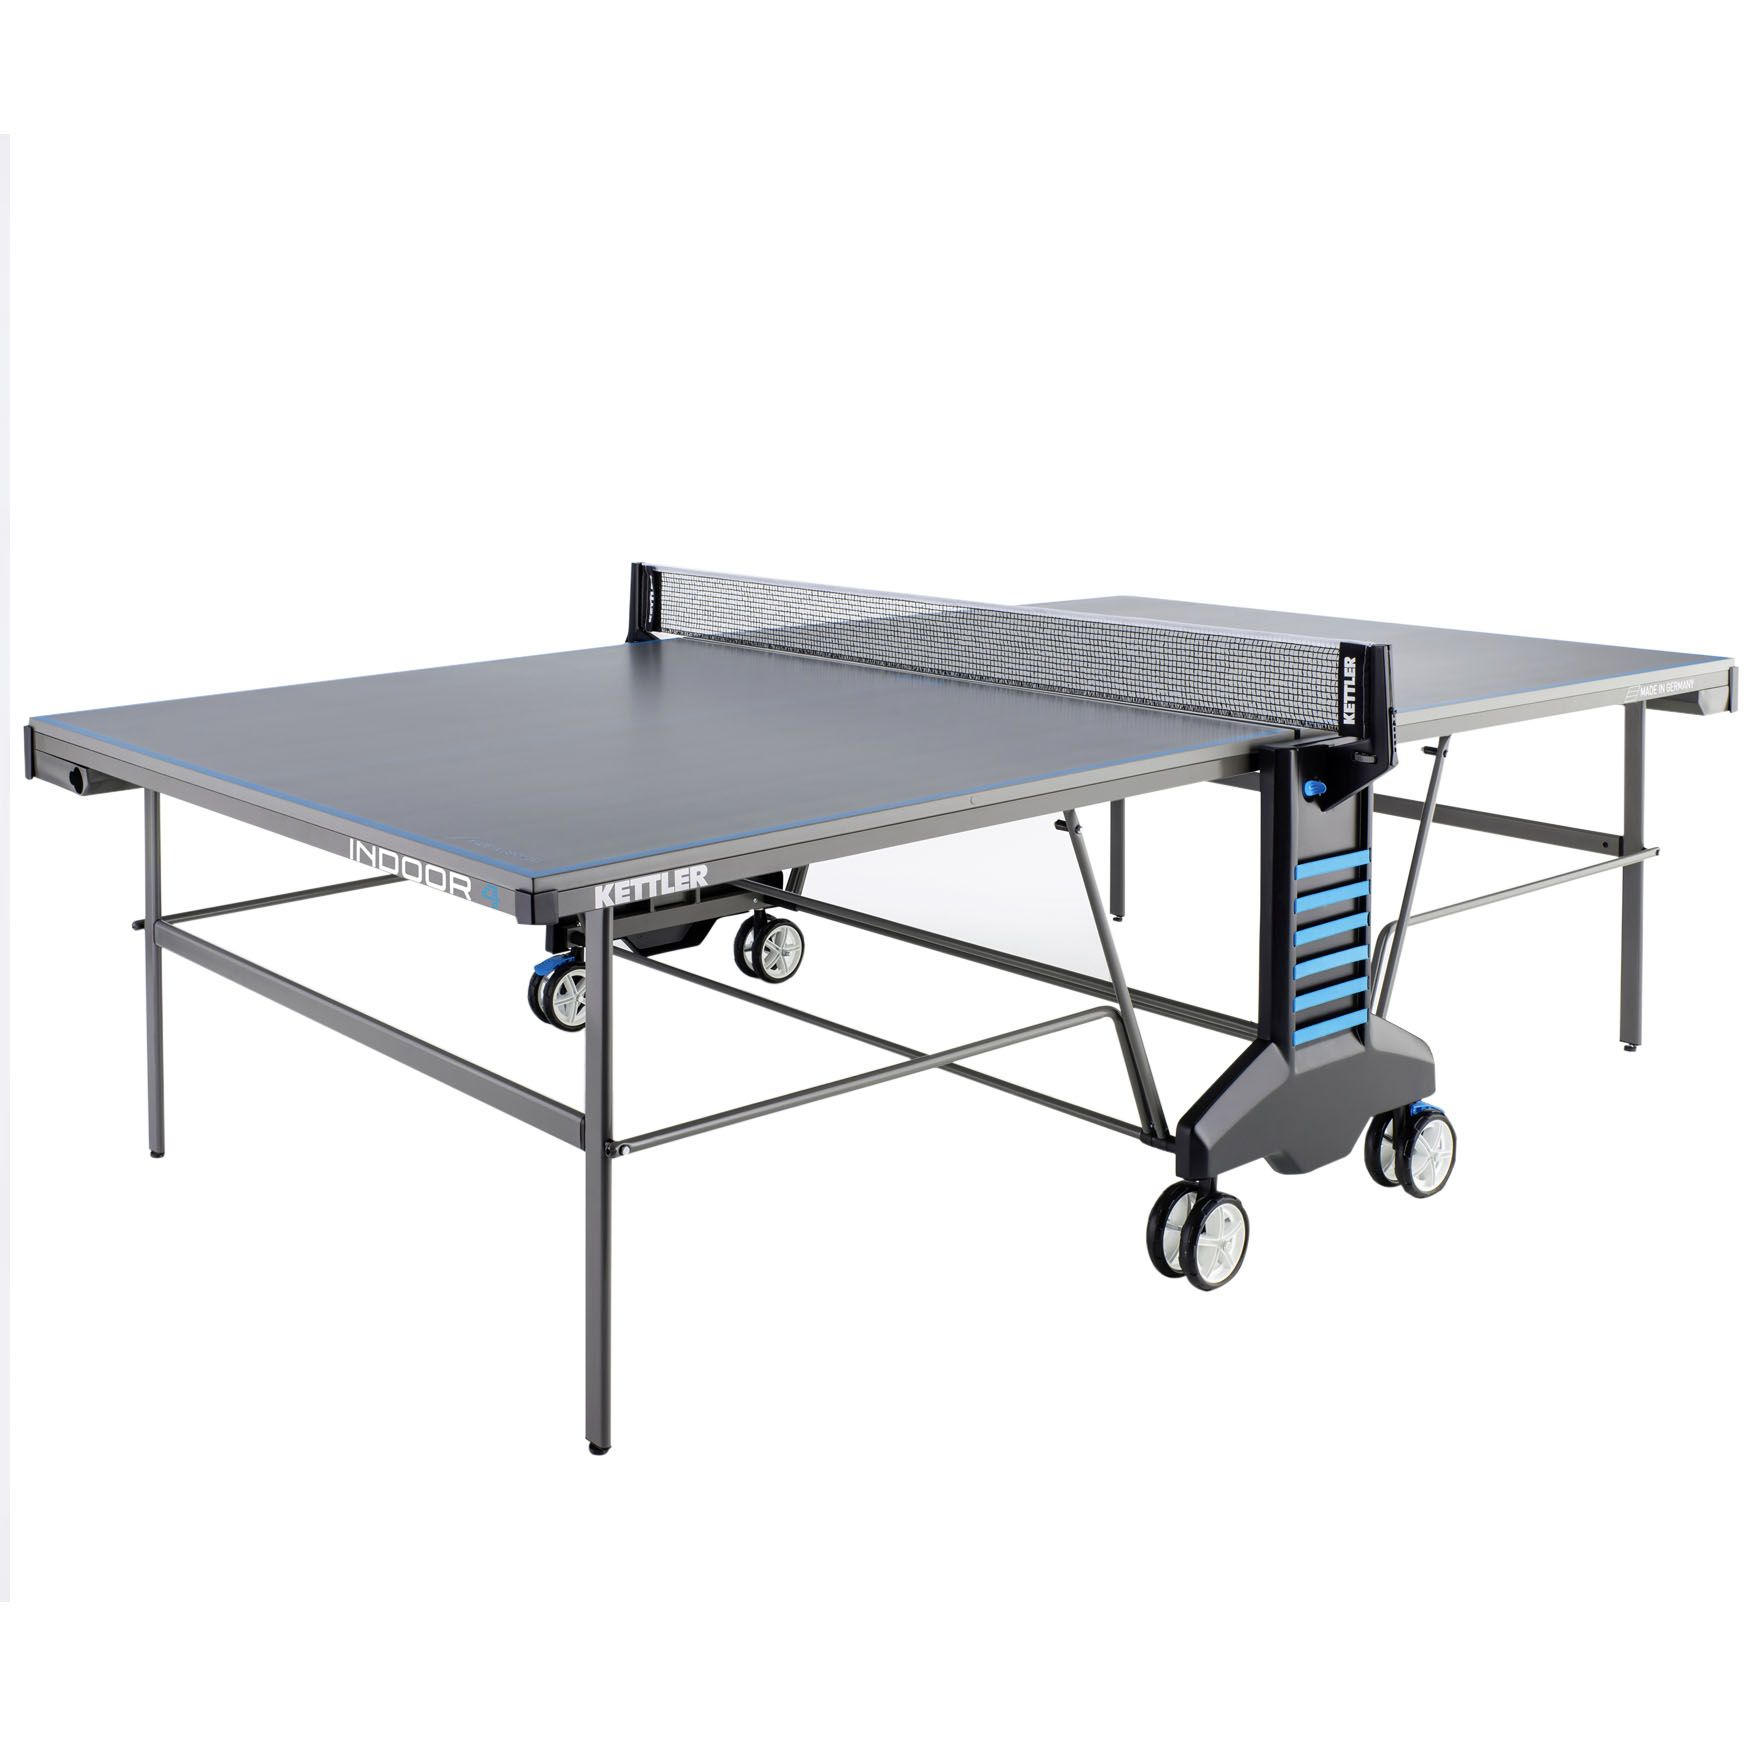 Kettler classic indoor 4 table tennis table for Table exterieur kettler